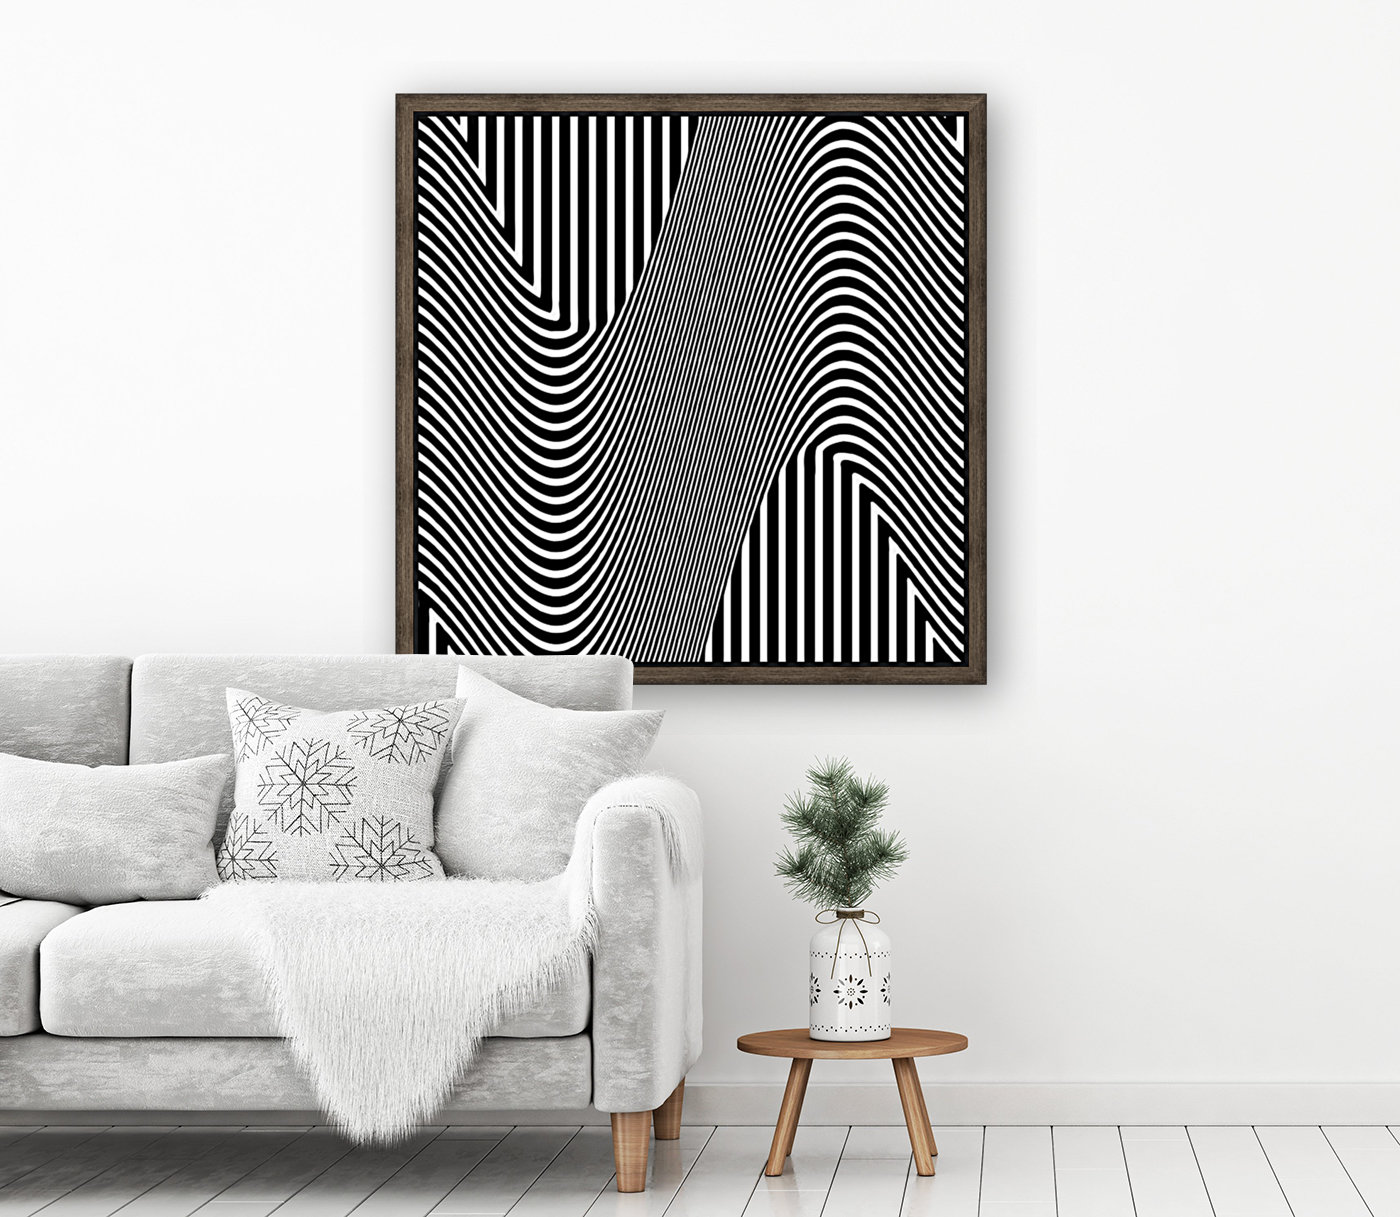 Black and White Abstract Geometric Design 1 with Floating Frame